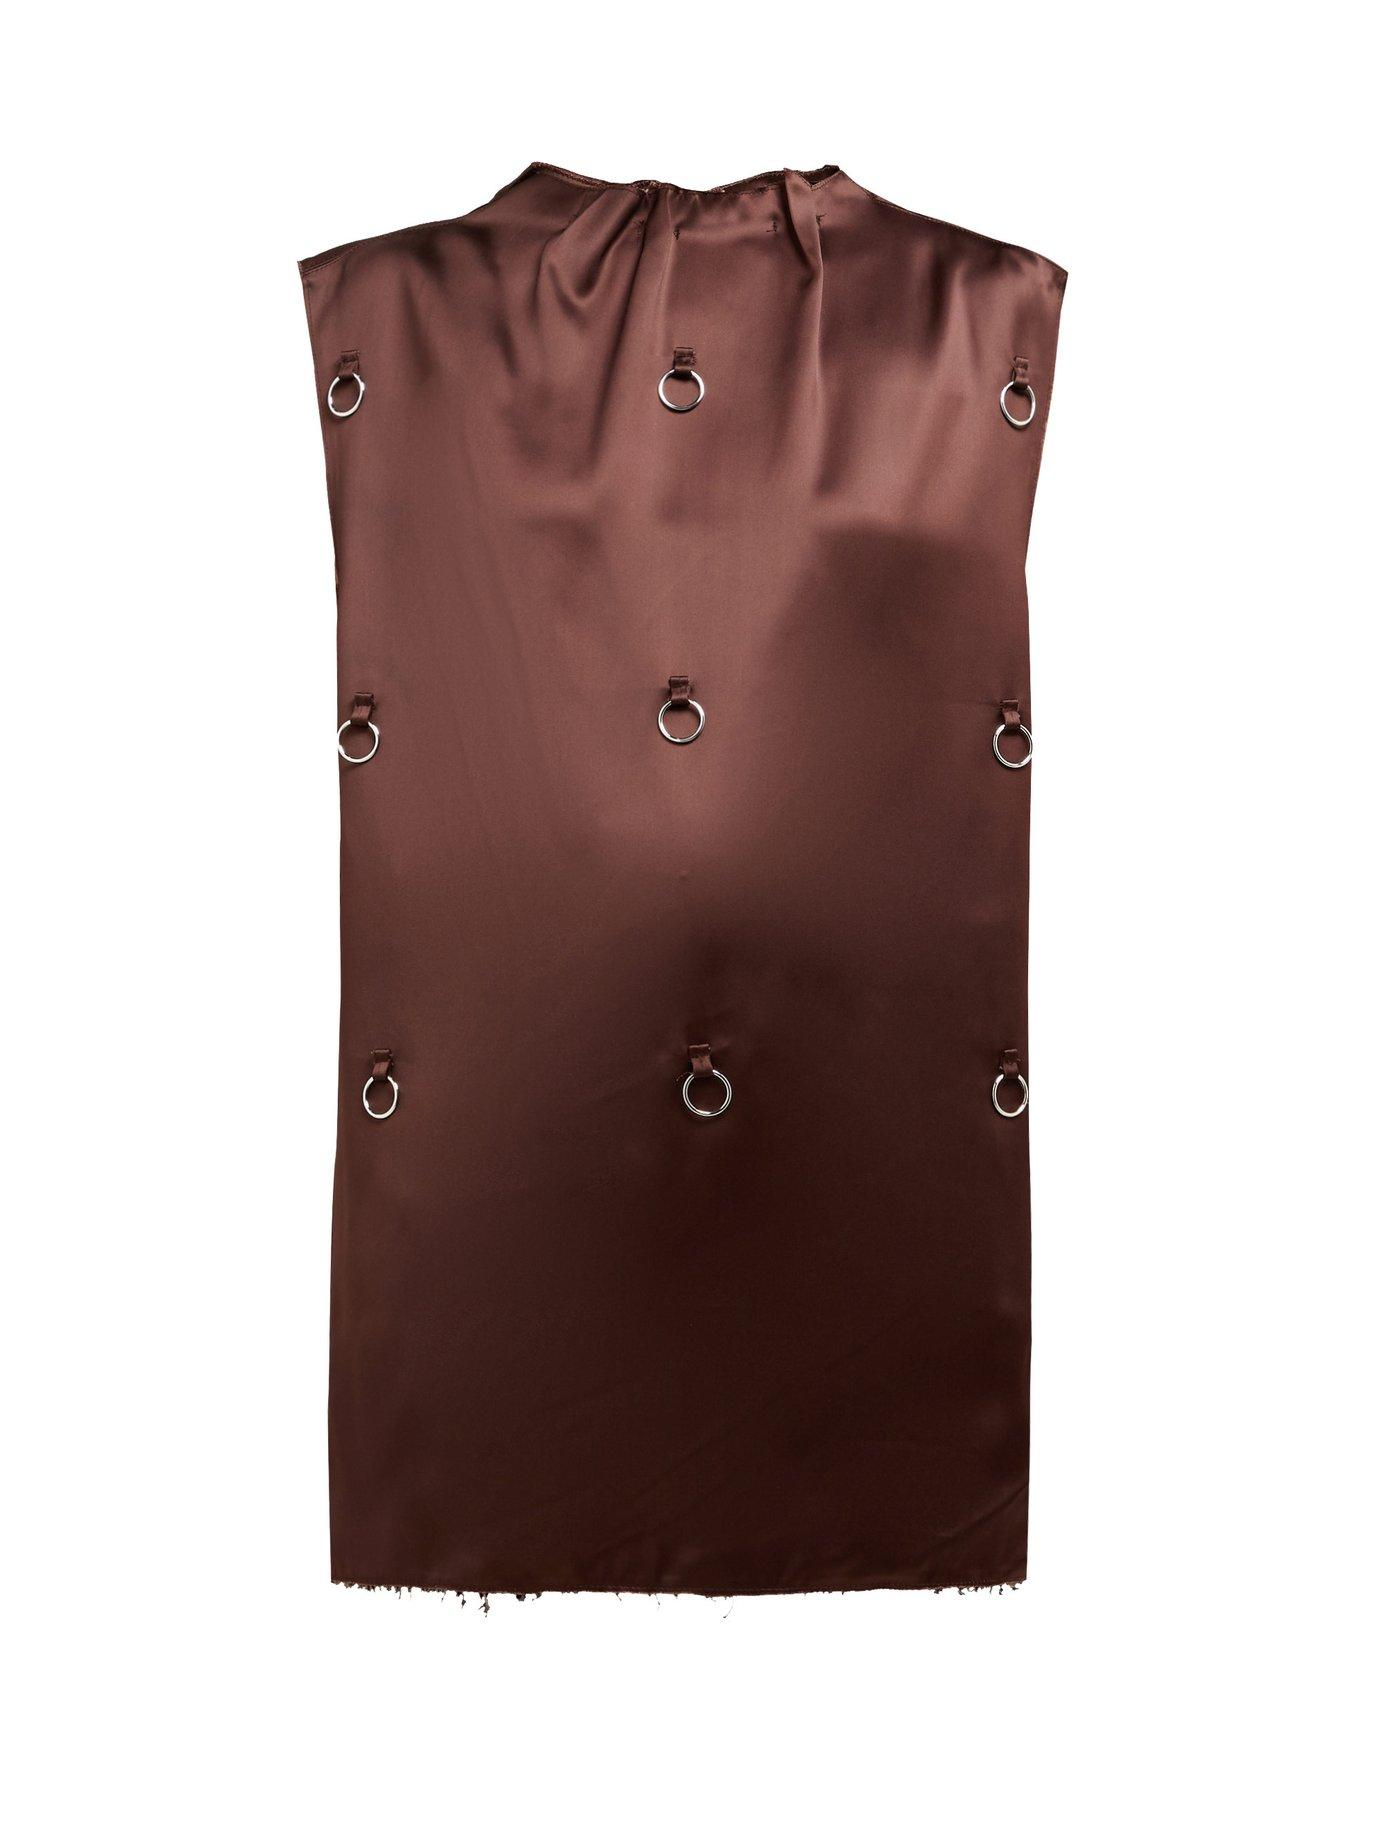 fa1dc9bf05a228 Lyst - Raf Simons O Ring Embellished Satin Tank Top in Brown